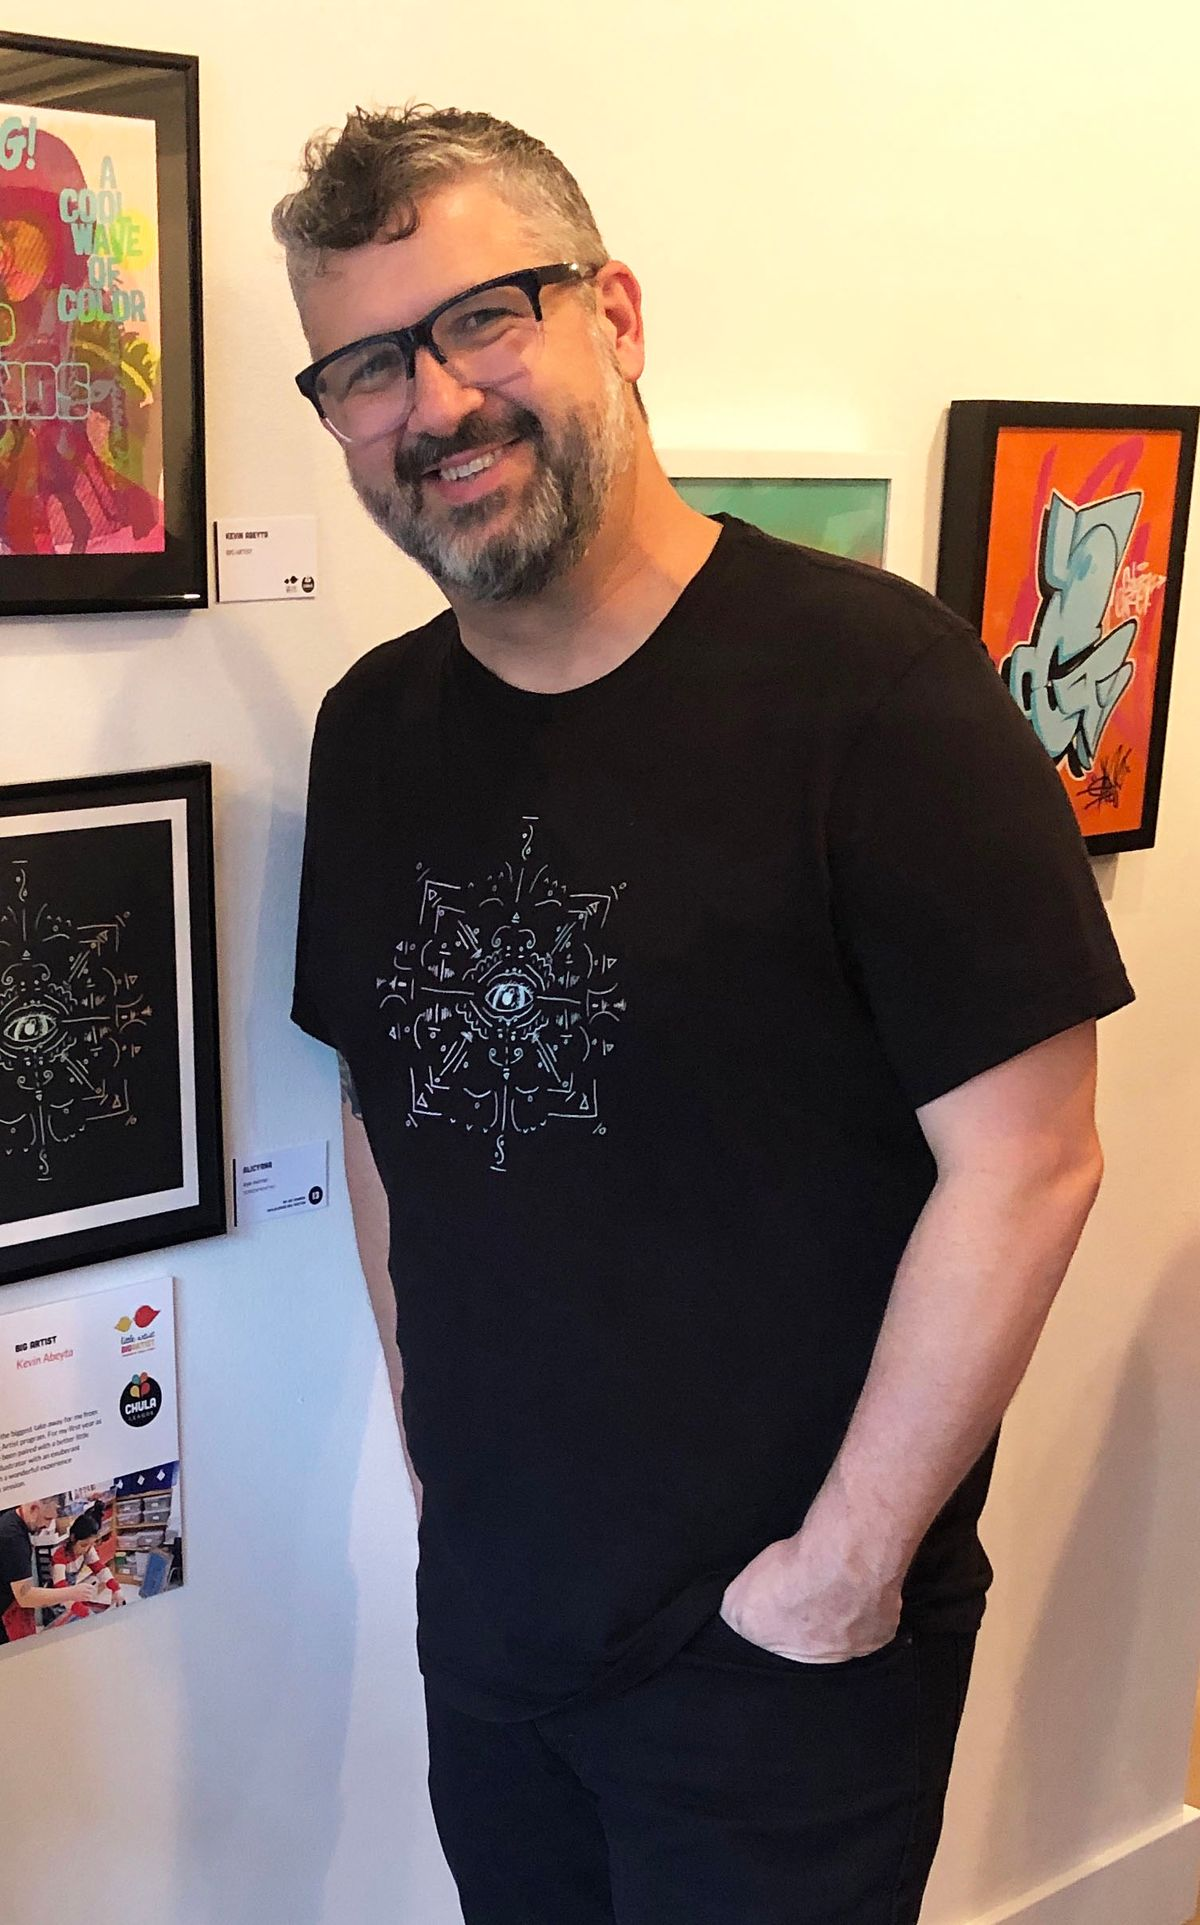 Kevin_Abeyta_Photo of Self_Austin Art_Austin Artist_Austin Gifts.jpg